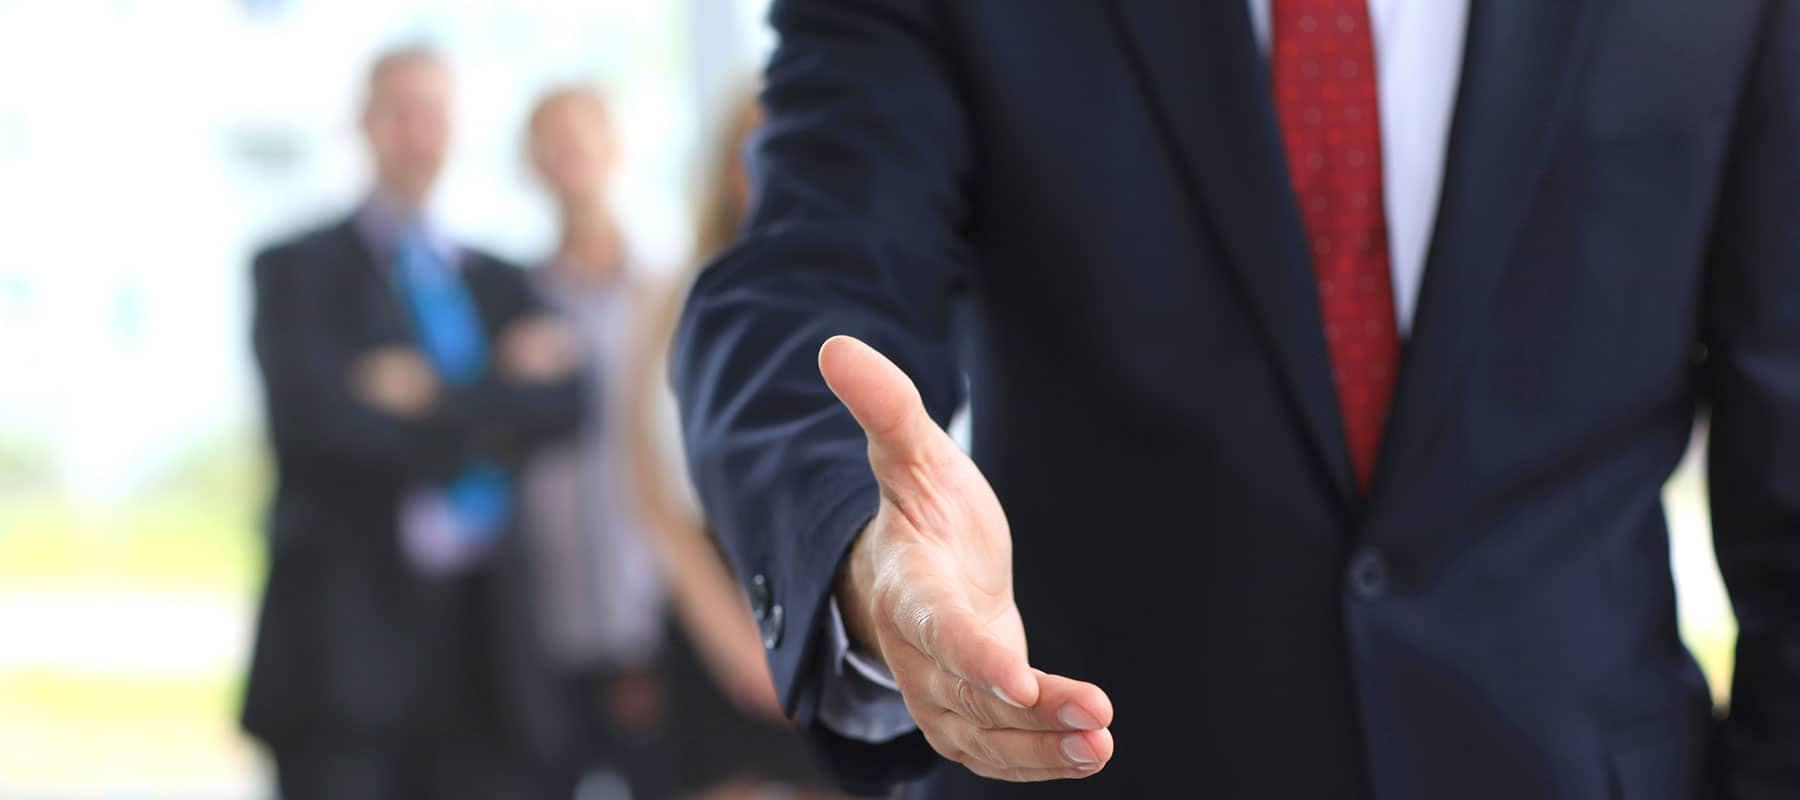 man in suit reaches out shake hands with staff in background